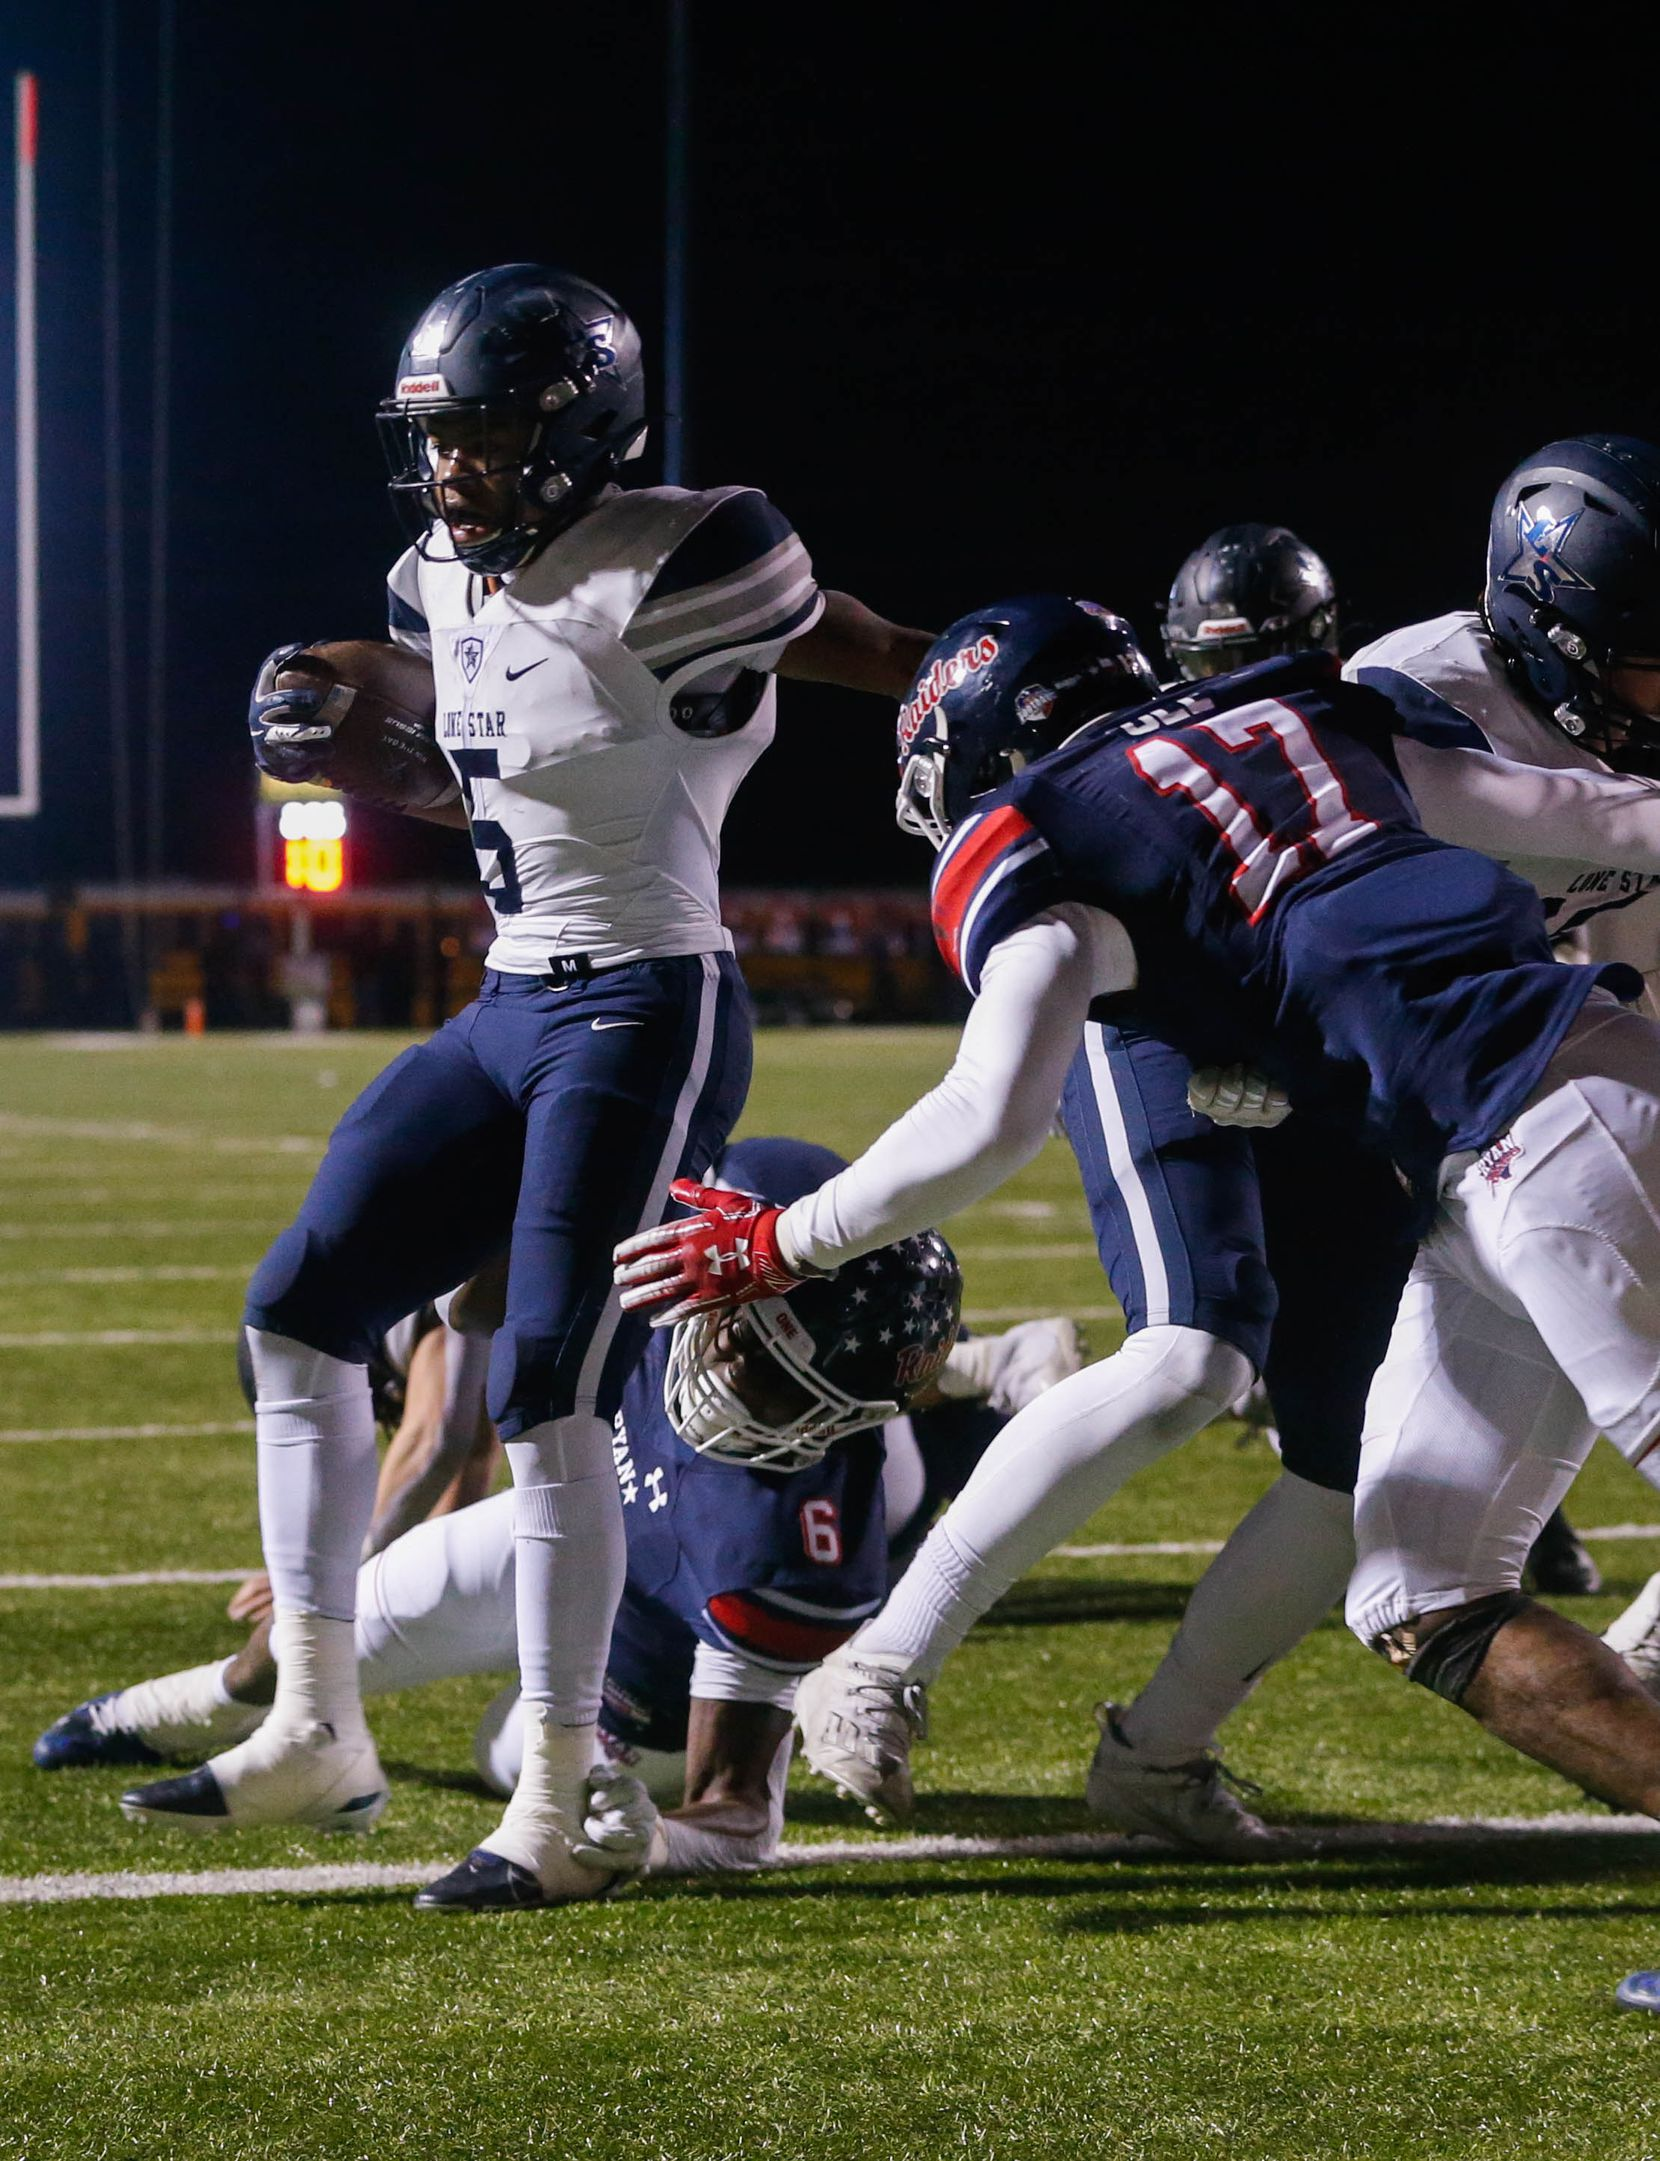 Frisco Lone Star's running back Jaden Nixon (5) scores a touchdown during the end of the second quarter of a football game against Denton Ryan at the C.H. Collins Complex in Denton on Thursday, Dec. 4, 2020. The game is tied at halftime, 14-14. (Juan Figueroa/ The Dallas Morning News)